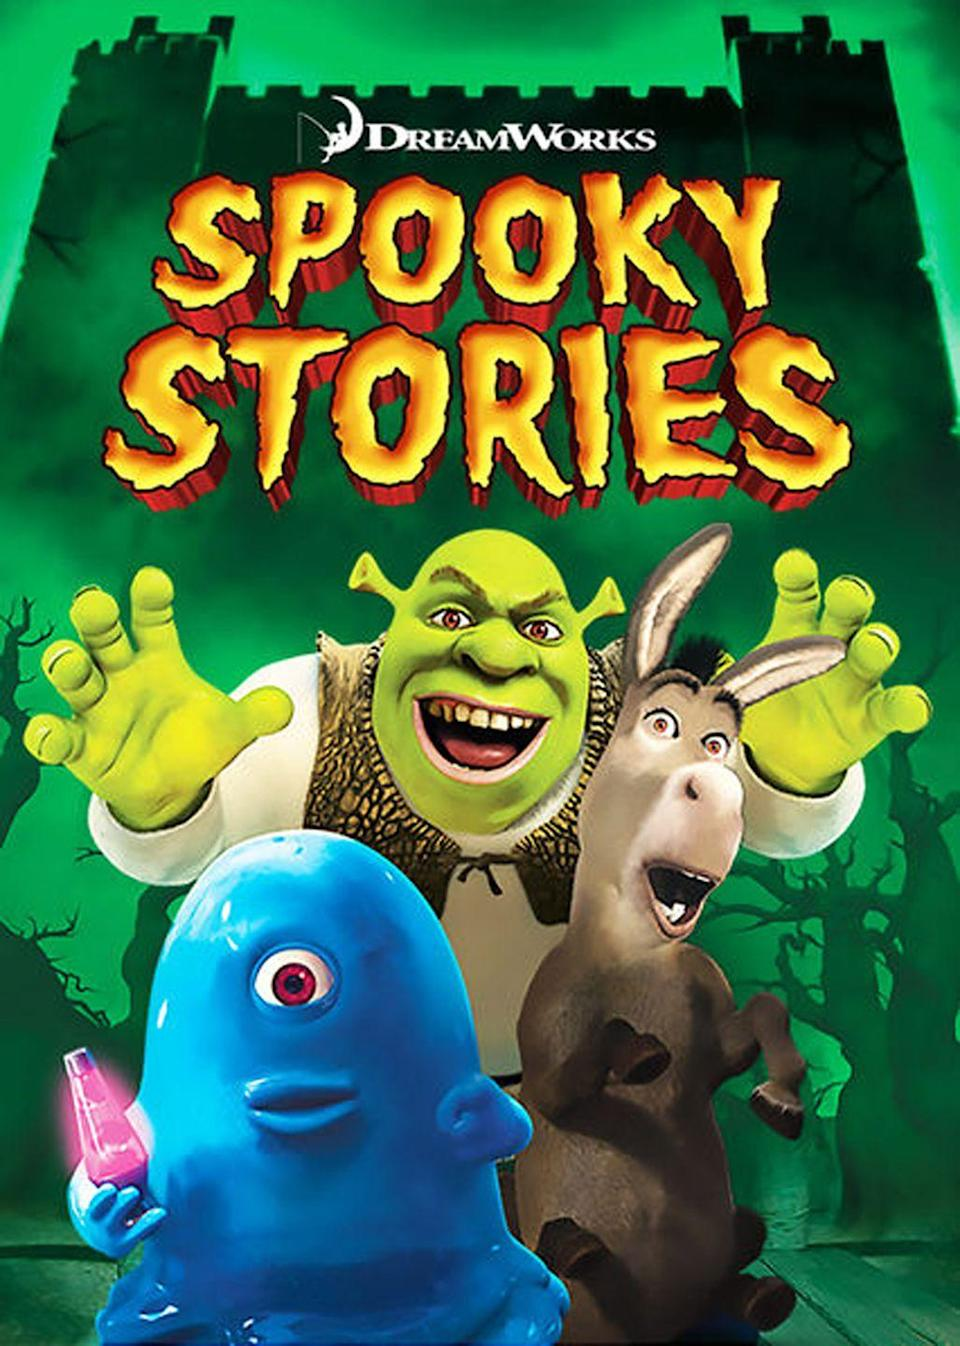 """<p>Shrek, Donkey, and your other favorite characters from the Kingdom of Far Away get together to tell spooky stories.</p><p><a class=""""link rapid-noclick-resp"""" href=""""https://www.netflix.com/watch/70218316"""" rel=""""nofollow noopener"""" target=""""_blank"""" data-ylk=""""slk:WATCH NOW"""">WATCH NOW</a></p>"""